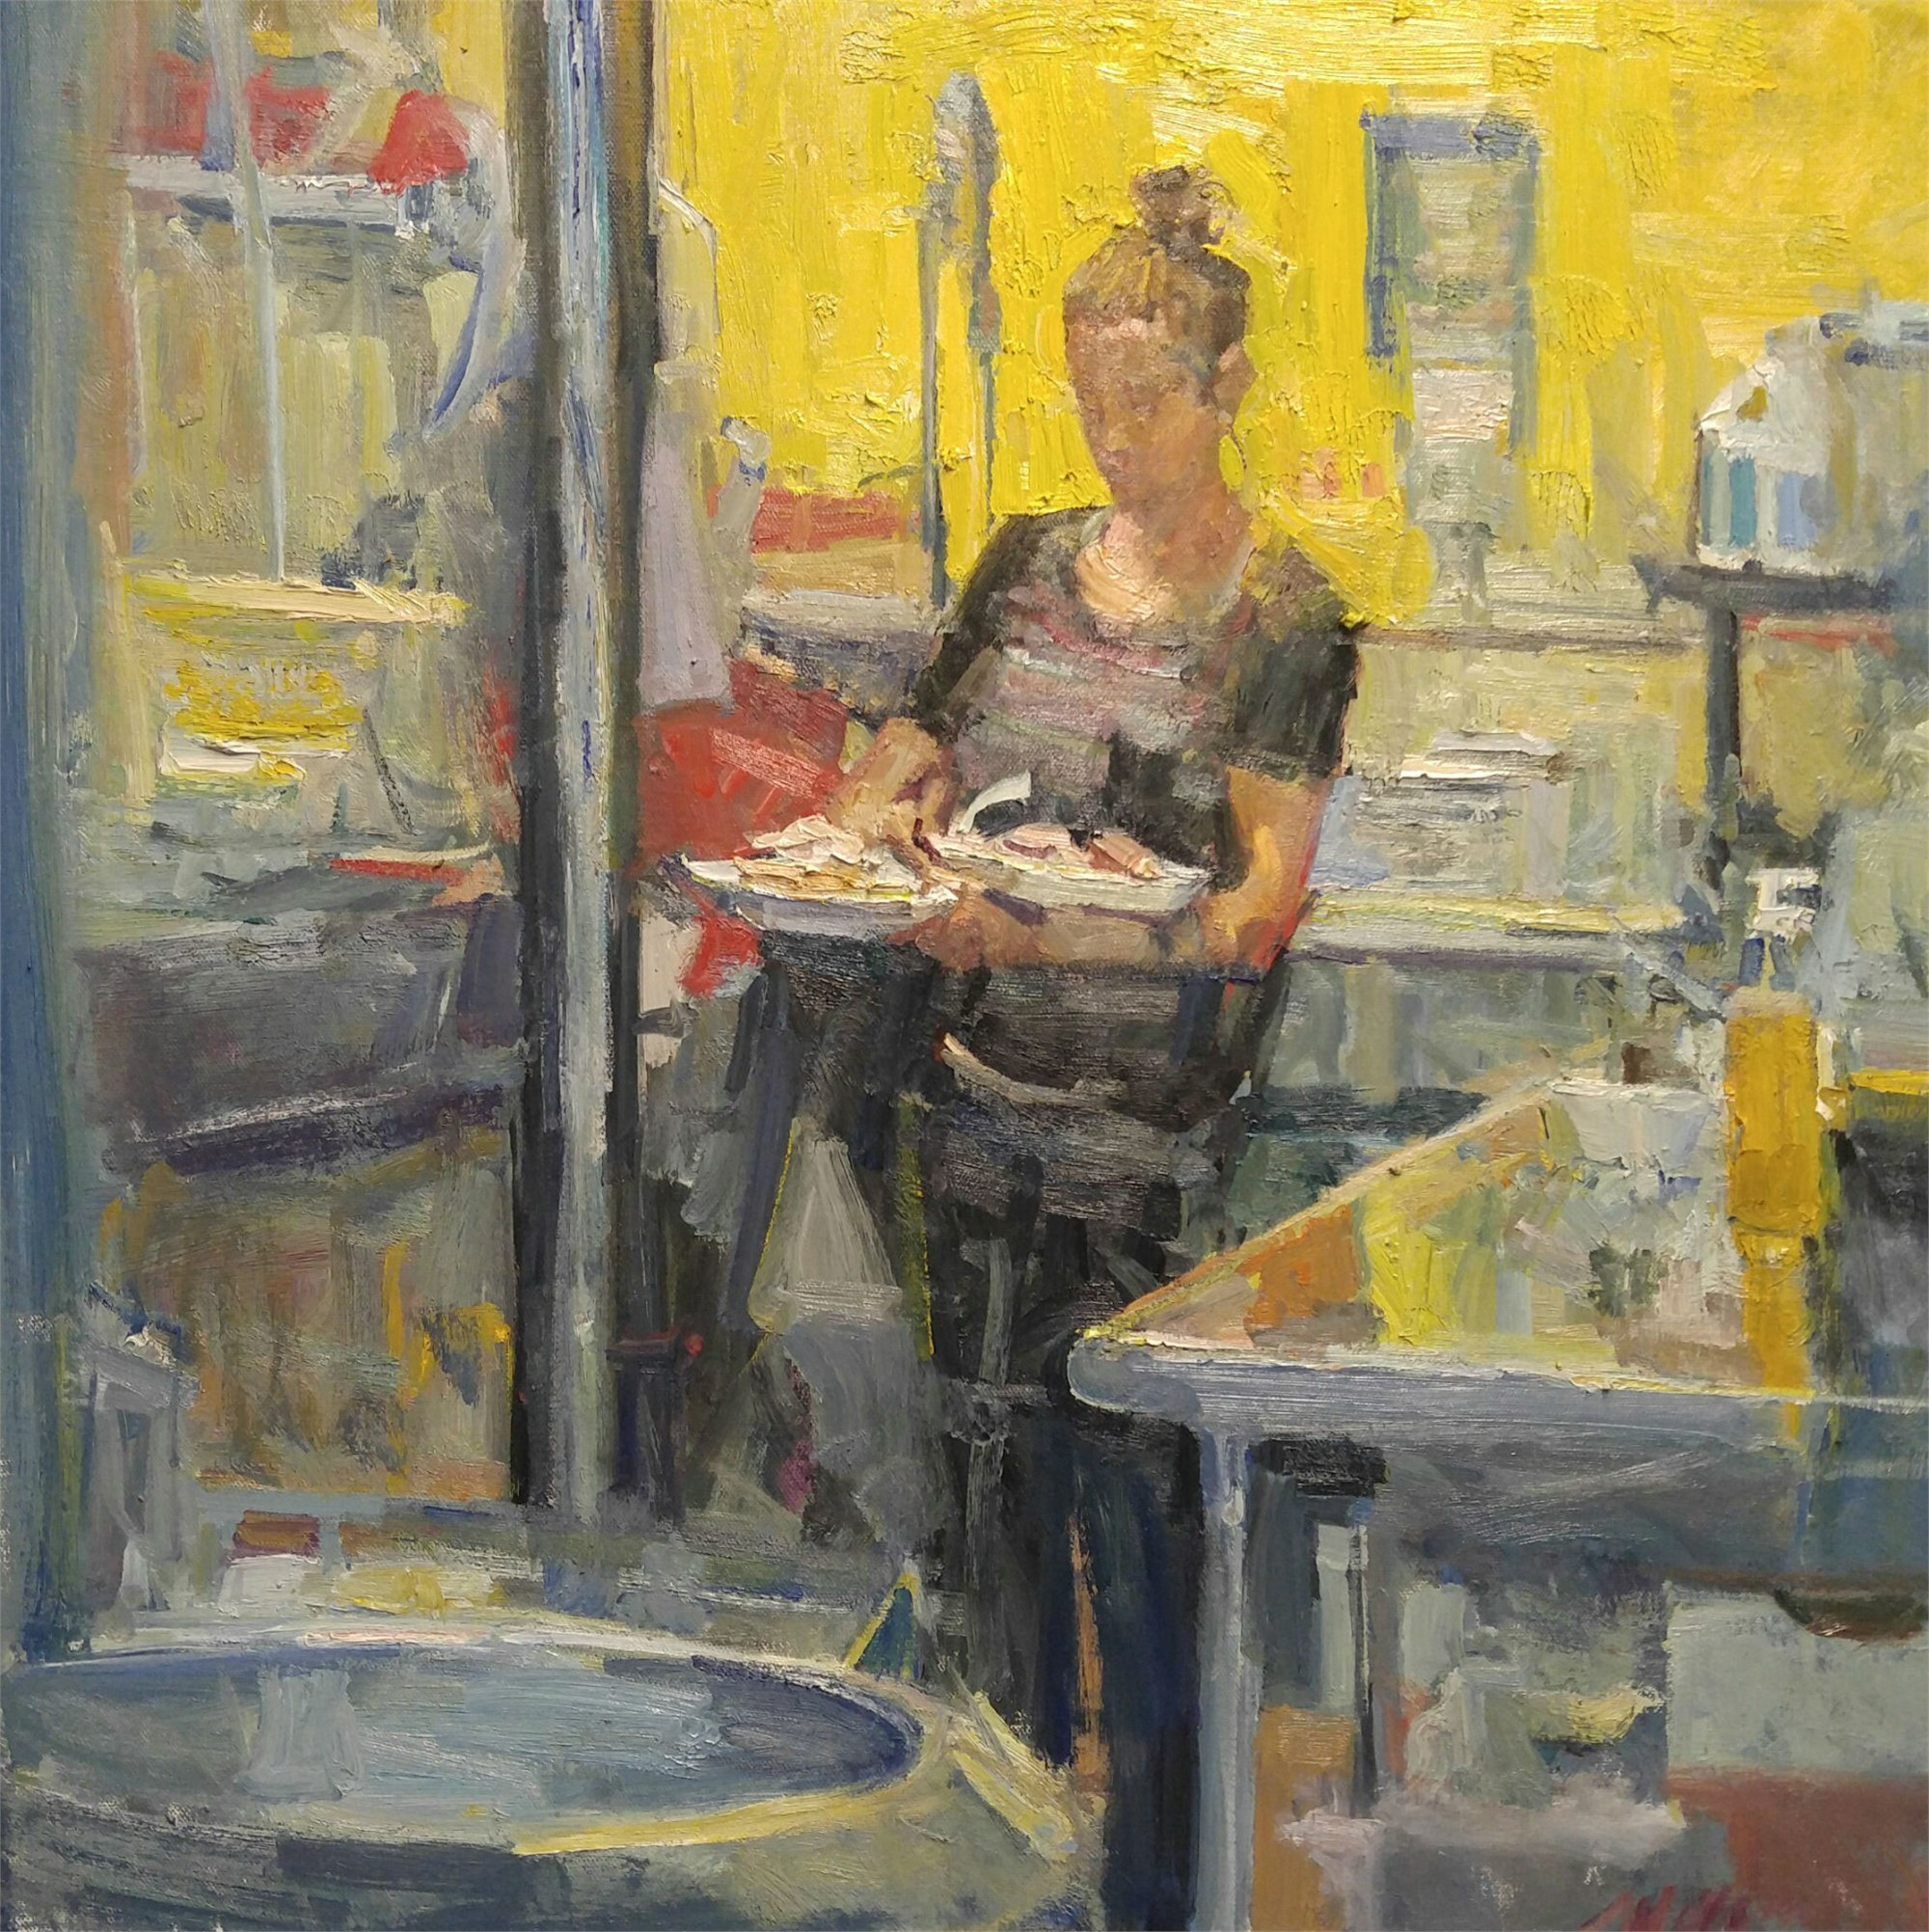 Yellow Kitchen by Mikael Olson